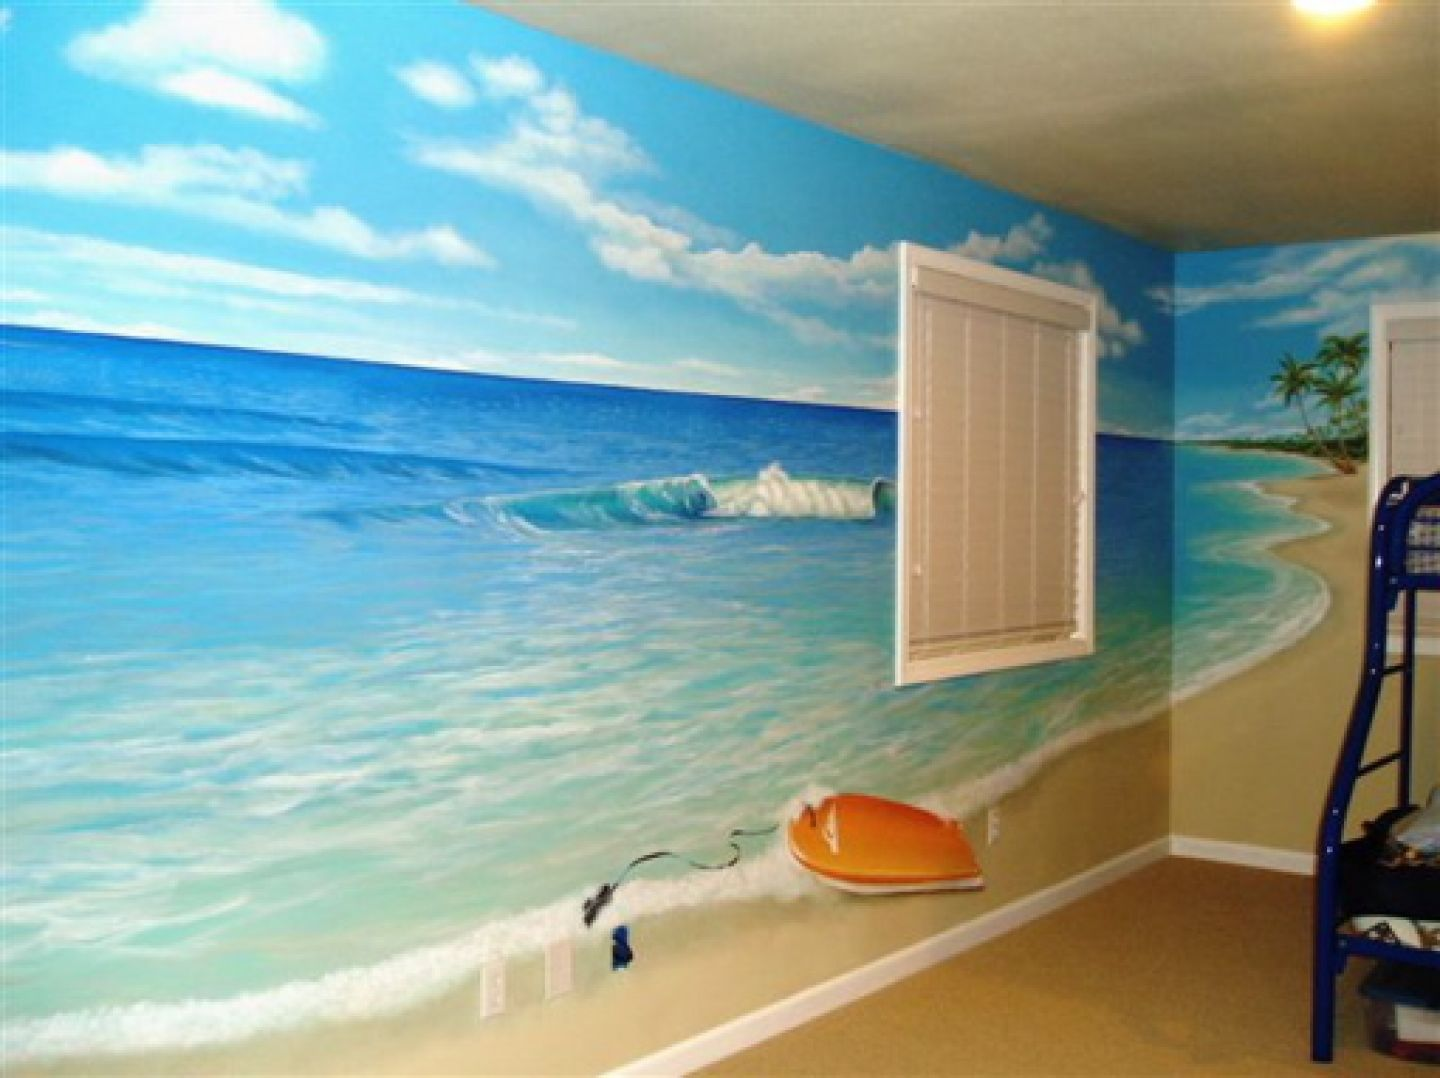 Kids Ocean Bathroom Decor Beach Mural Ideas To Paint On Divider Wall Tags Beach